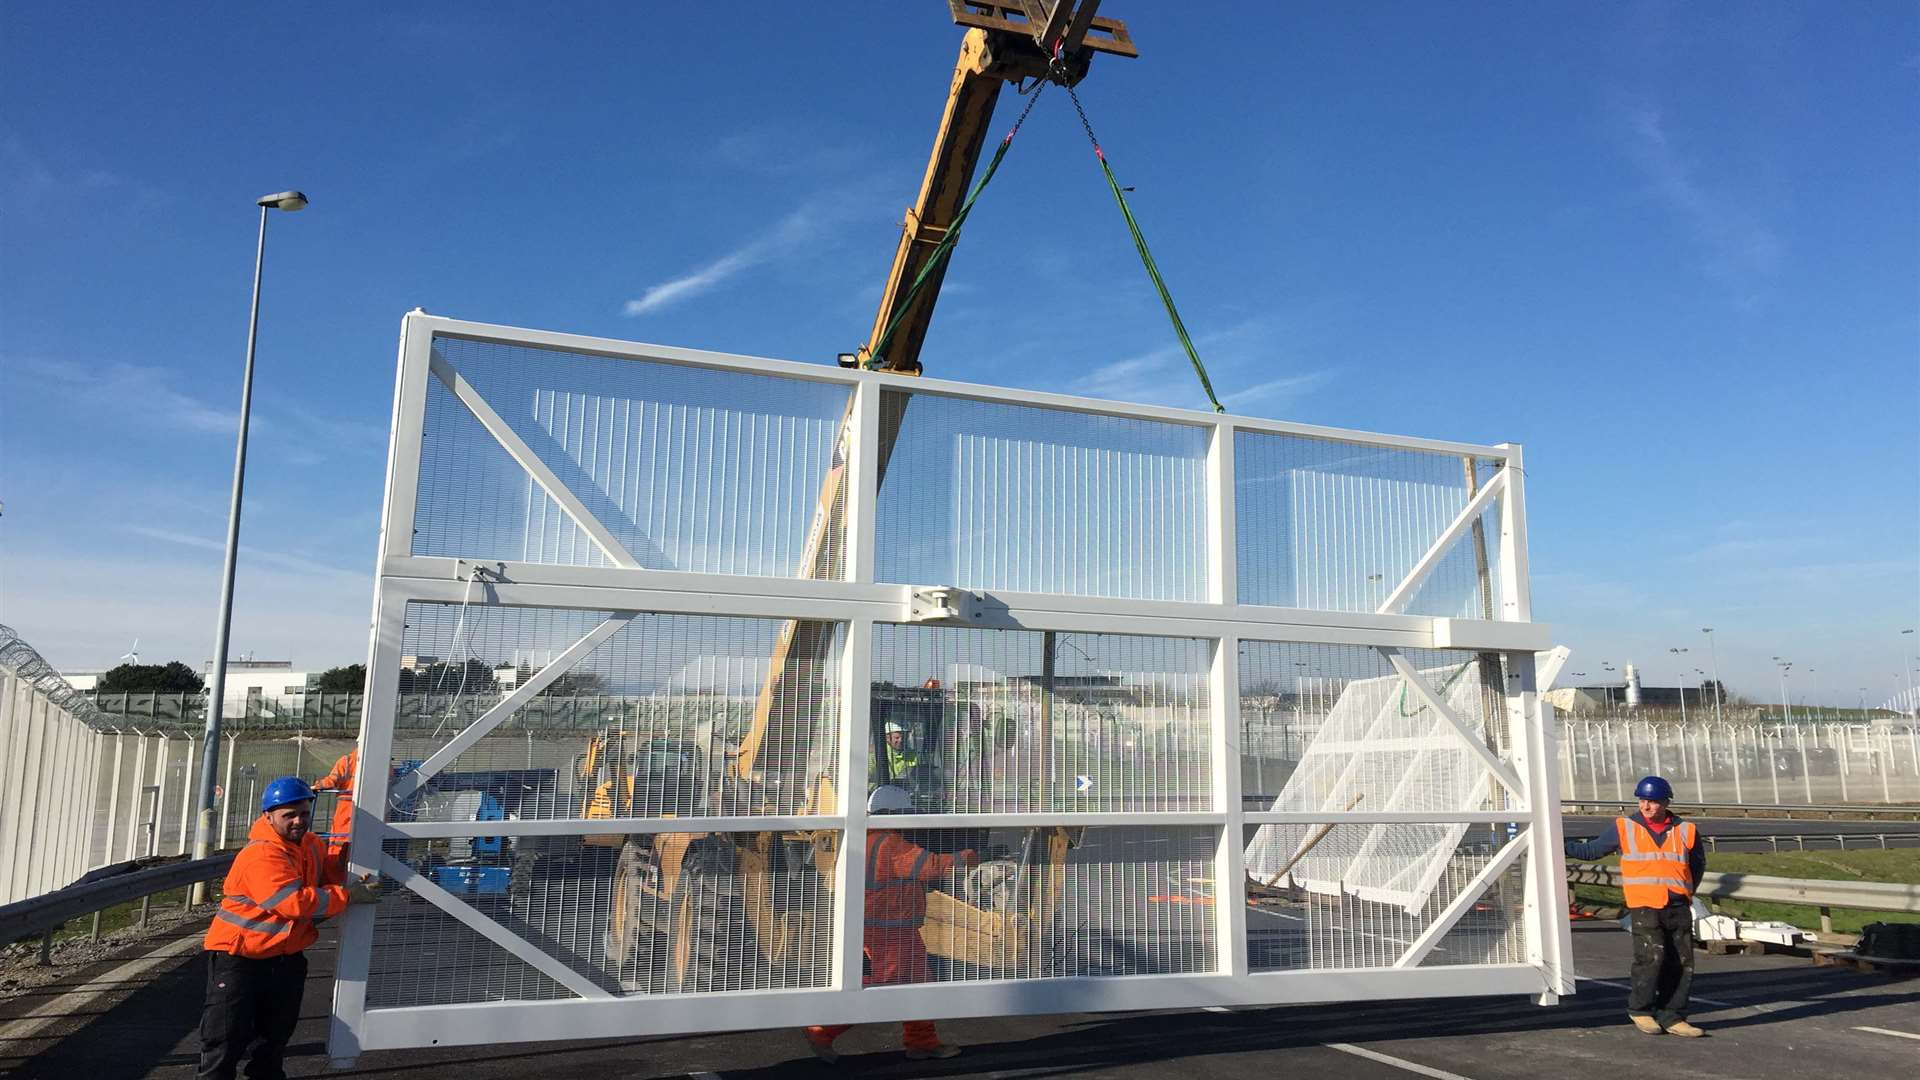 Each gate installed at Eurotunnel weighs a tonne